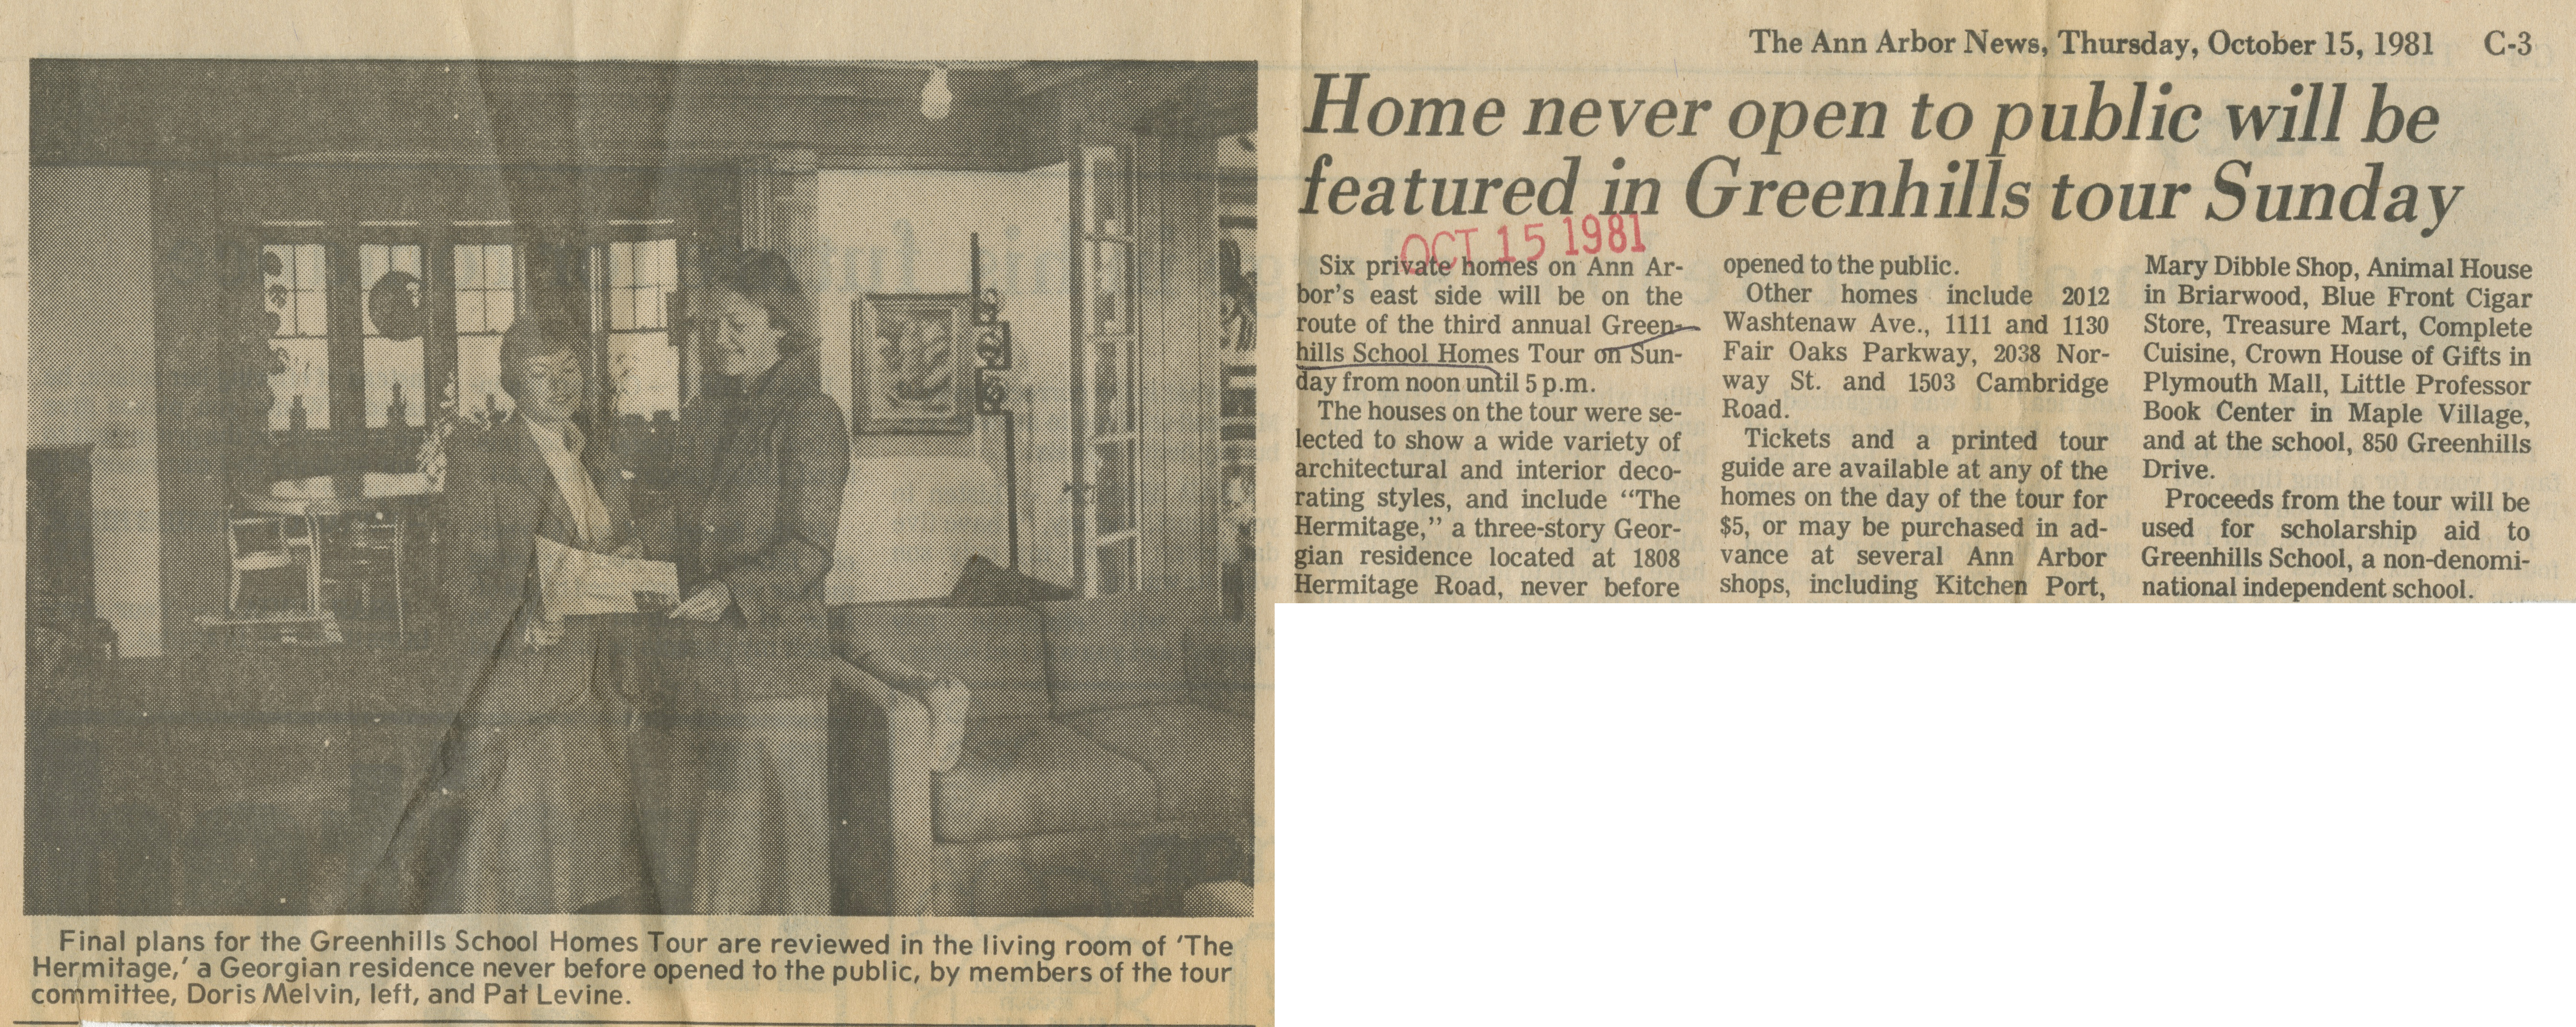 Home Never Open To Public Will Be Featured In Greenhills Tour Sunday image